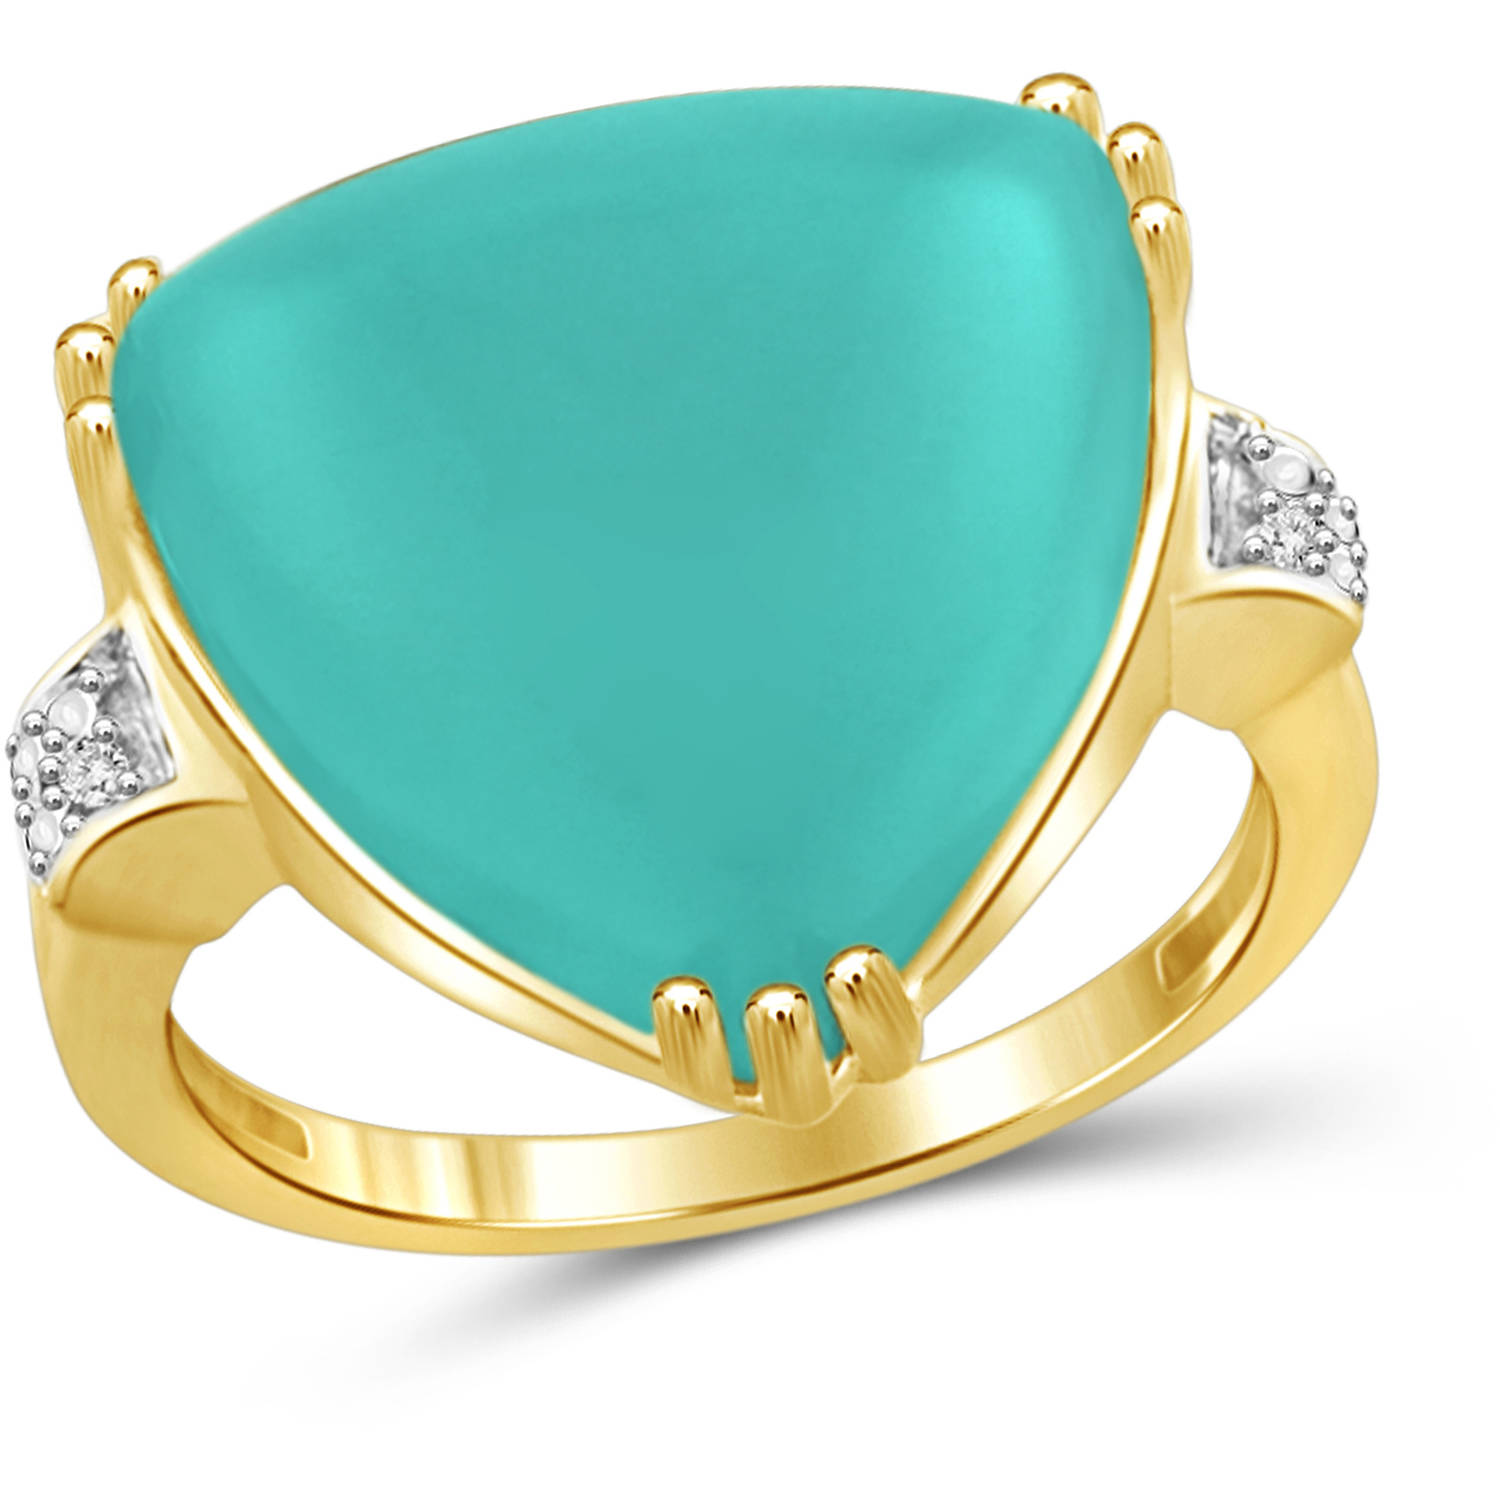 JewelersClub 13-3 4 Carat T.G.W. Chalcedony and White Diamond Accent 14kt Gold over Silver Fashion Ring by JewelersClub